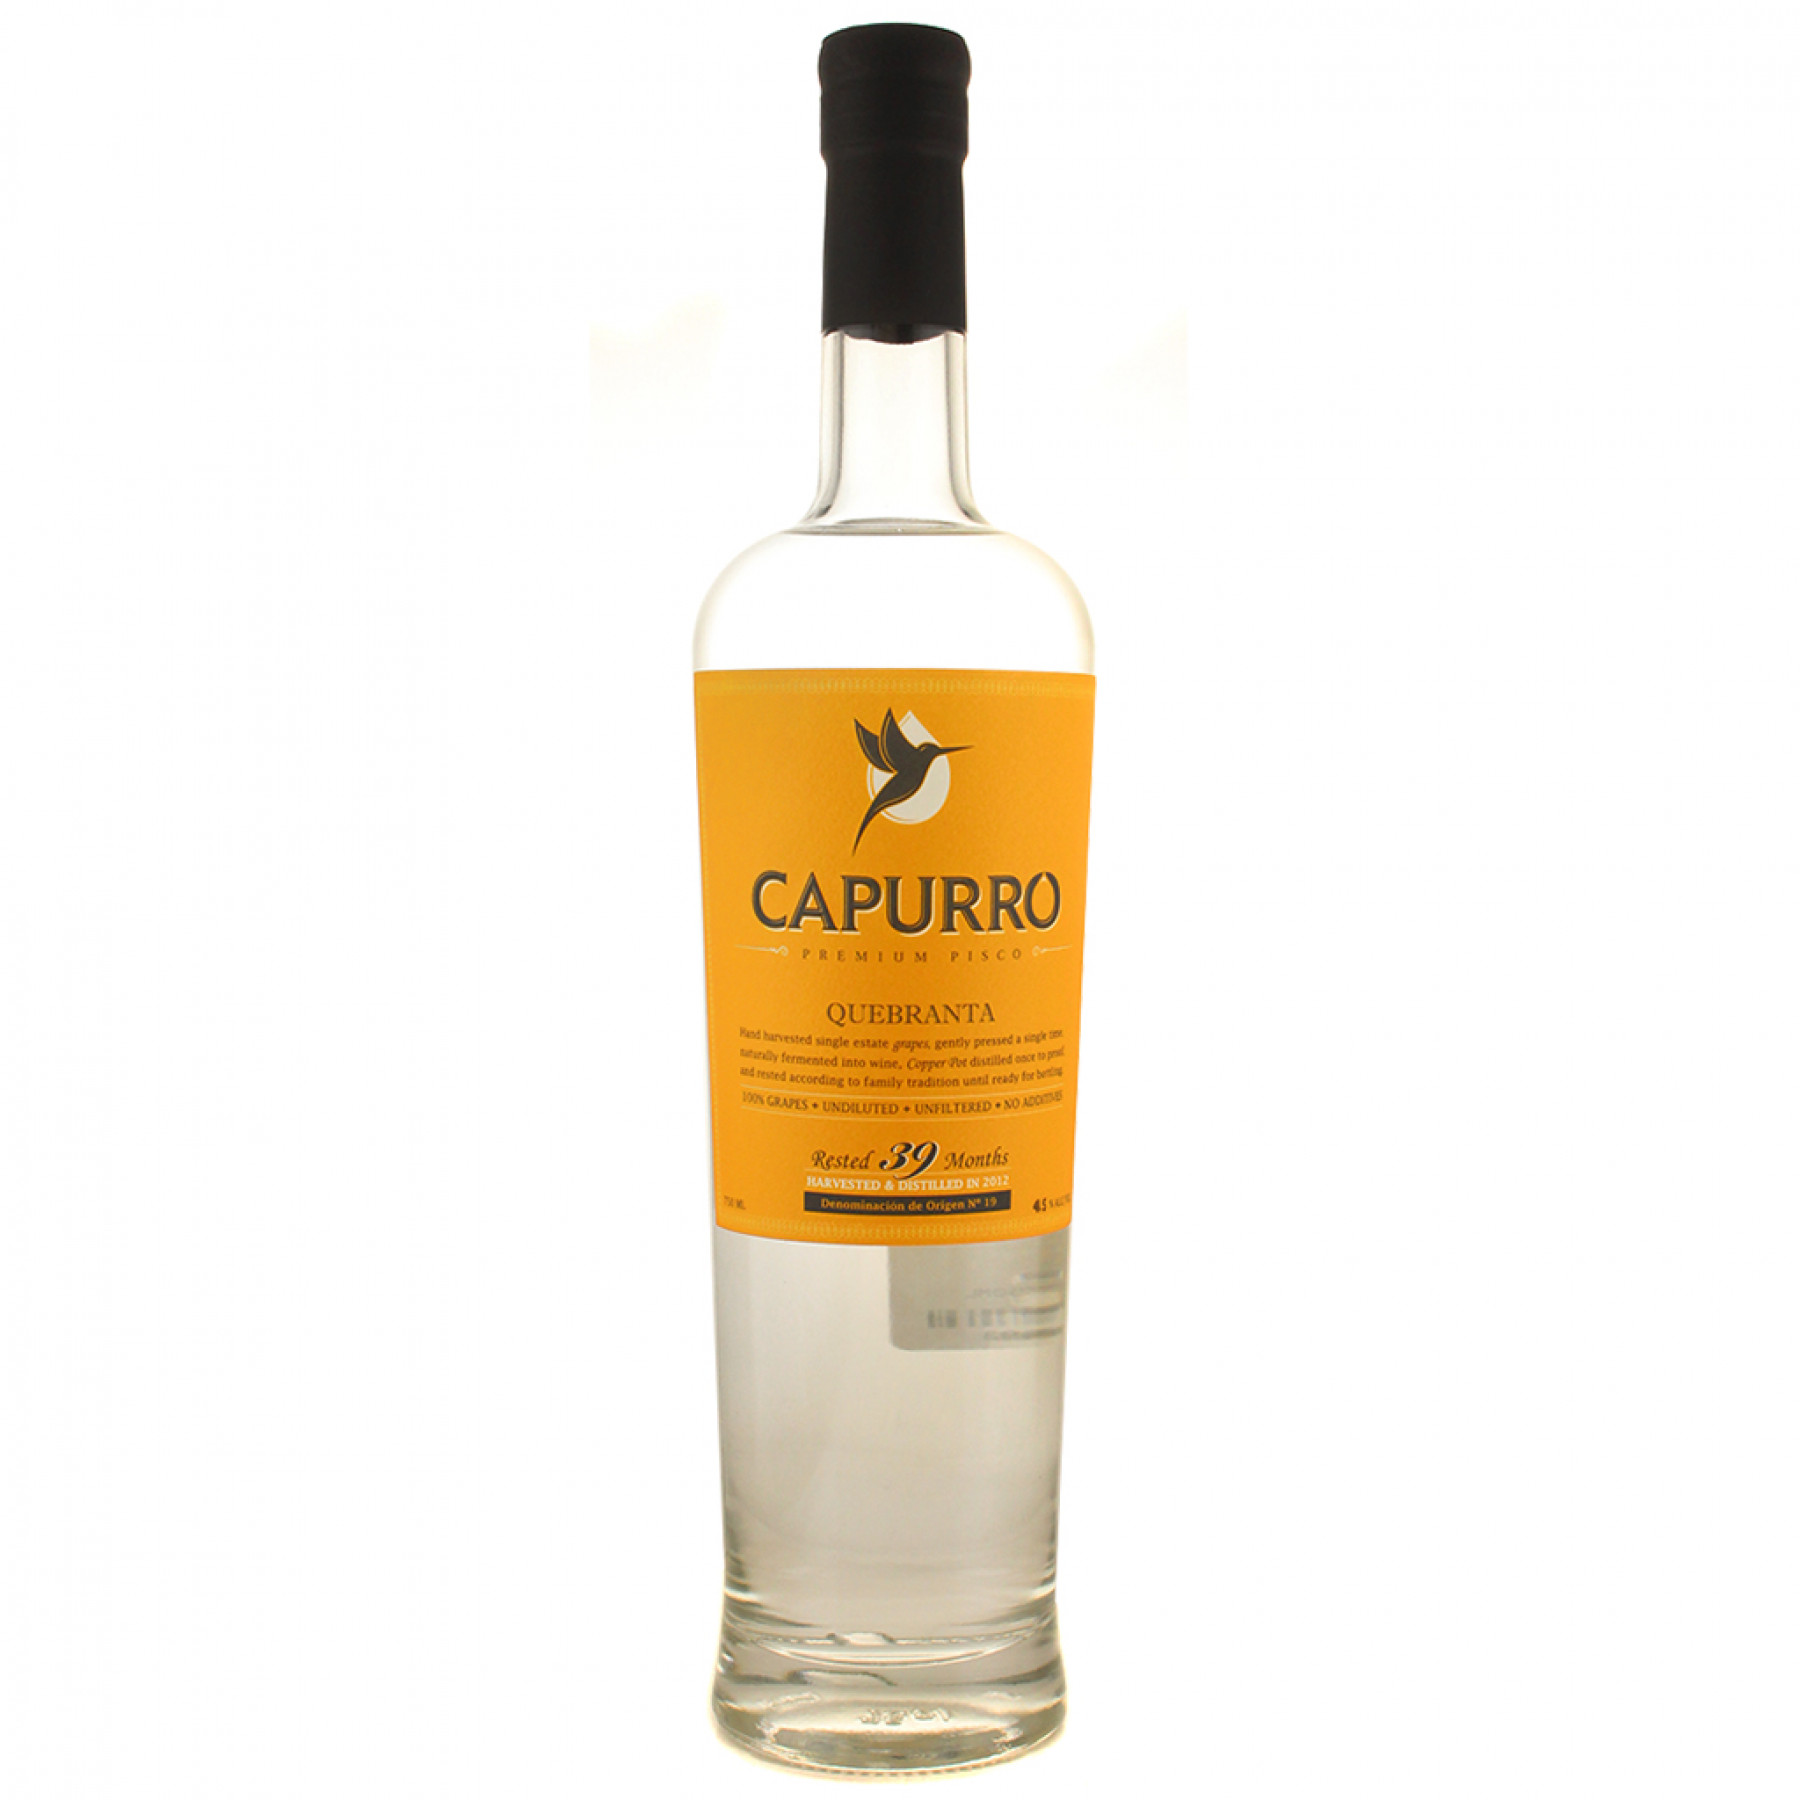 2015 Capurro Quebranta Pisco 750mL